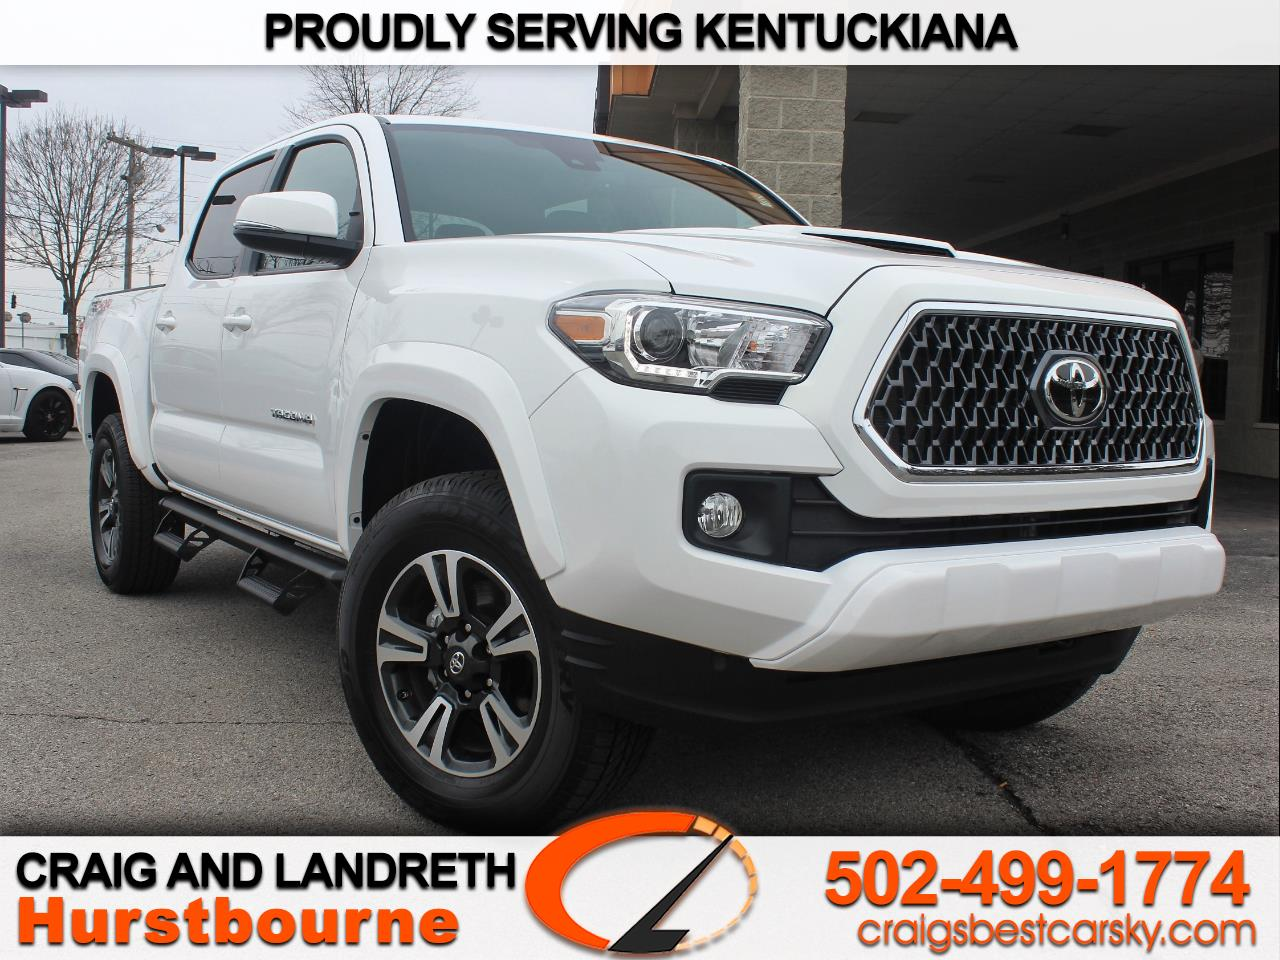 2019 Toyota Tacoma SR5 Double Cab Long Bed V6 6AT 4WD